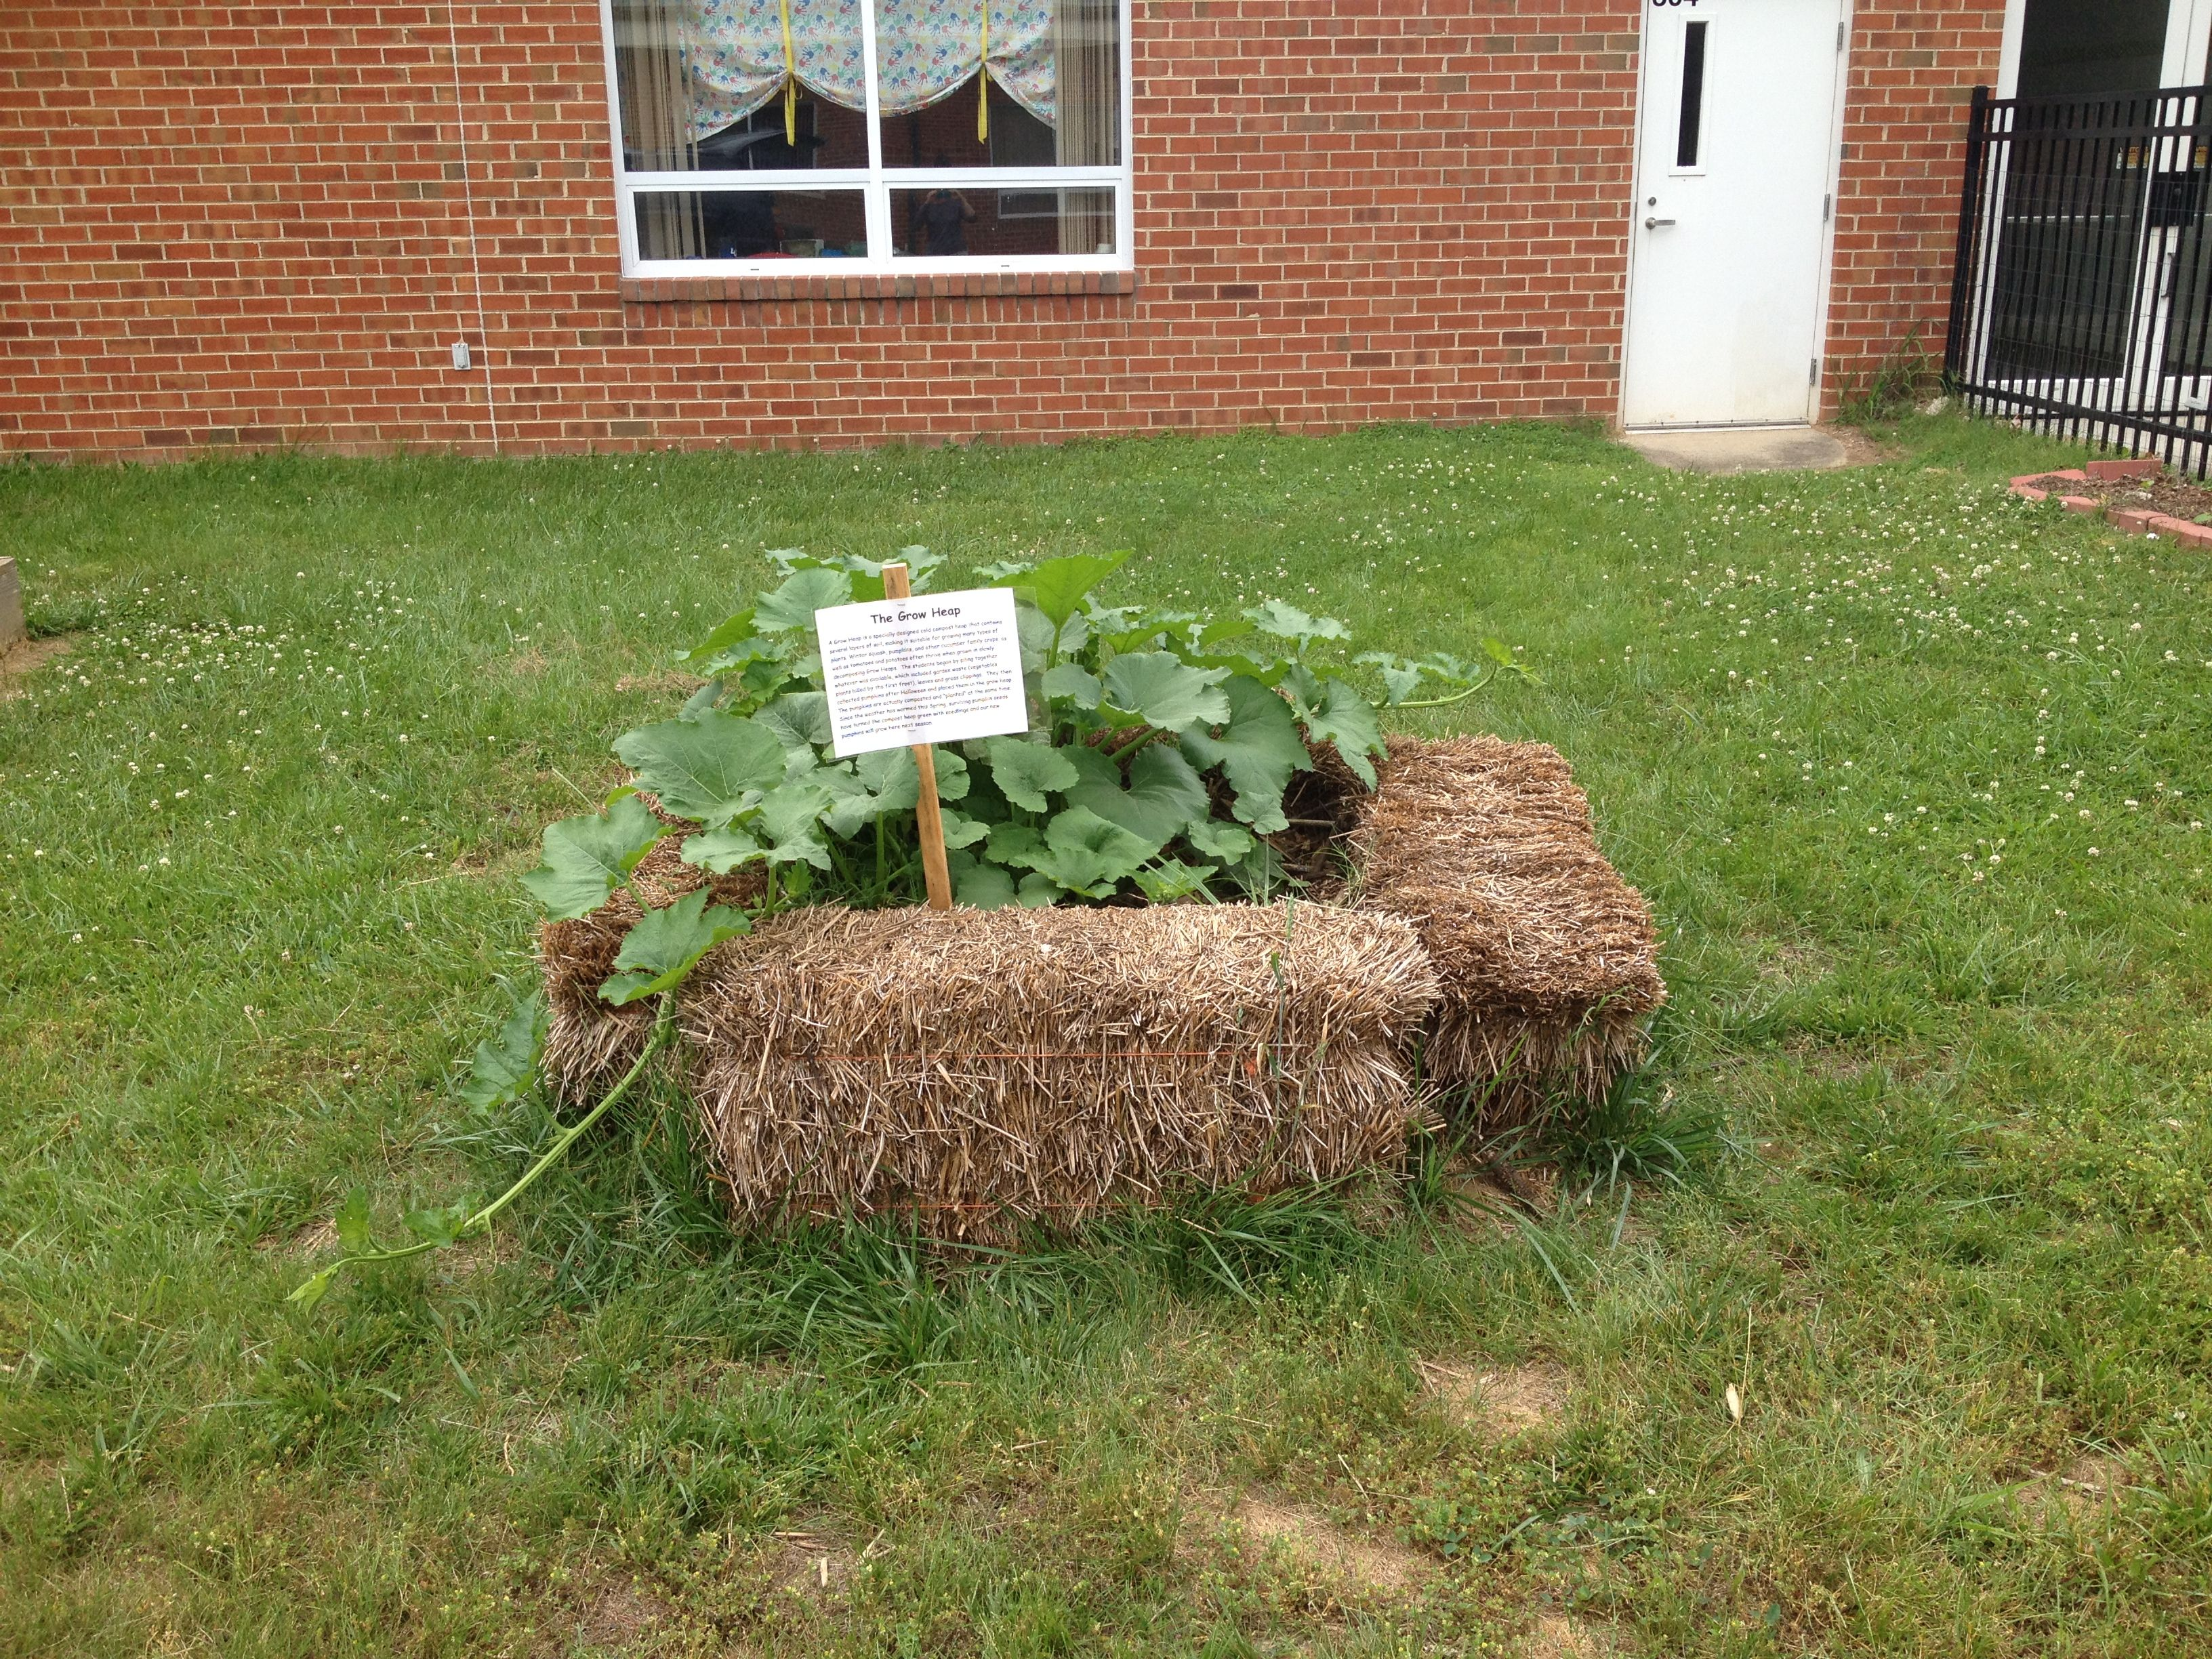 This is our grow heap, a compost pile.  In the file we added the garden waste, leaves and grass clippings to the pile which is surrounded by four straw bales.  The teachers also gave us about 10 pumpkins they had in their classrooms.  We watched them decompose all winter and the spring we had tons of pumpkin volunteers.  We thinned them out to just a few pumpkin vines.  A great way to grow pumpkins and make compost!